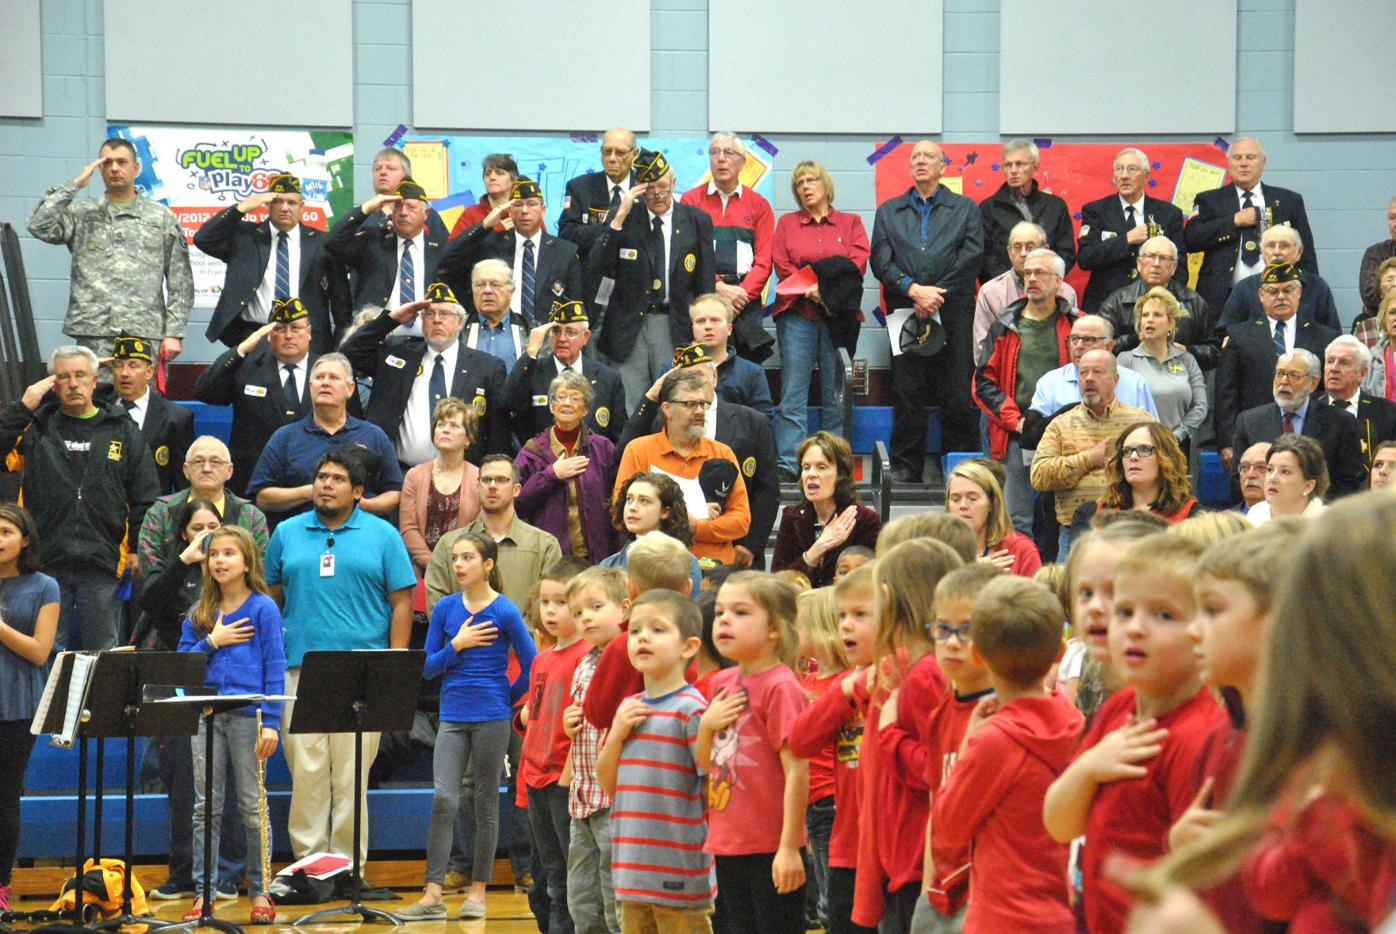 Bridgwater Veterans Day star spangled banner